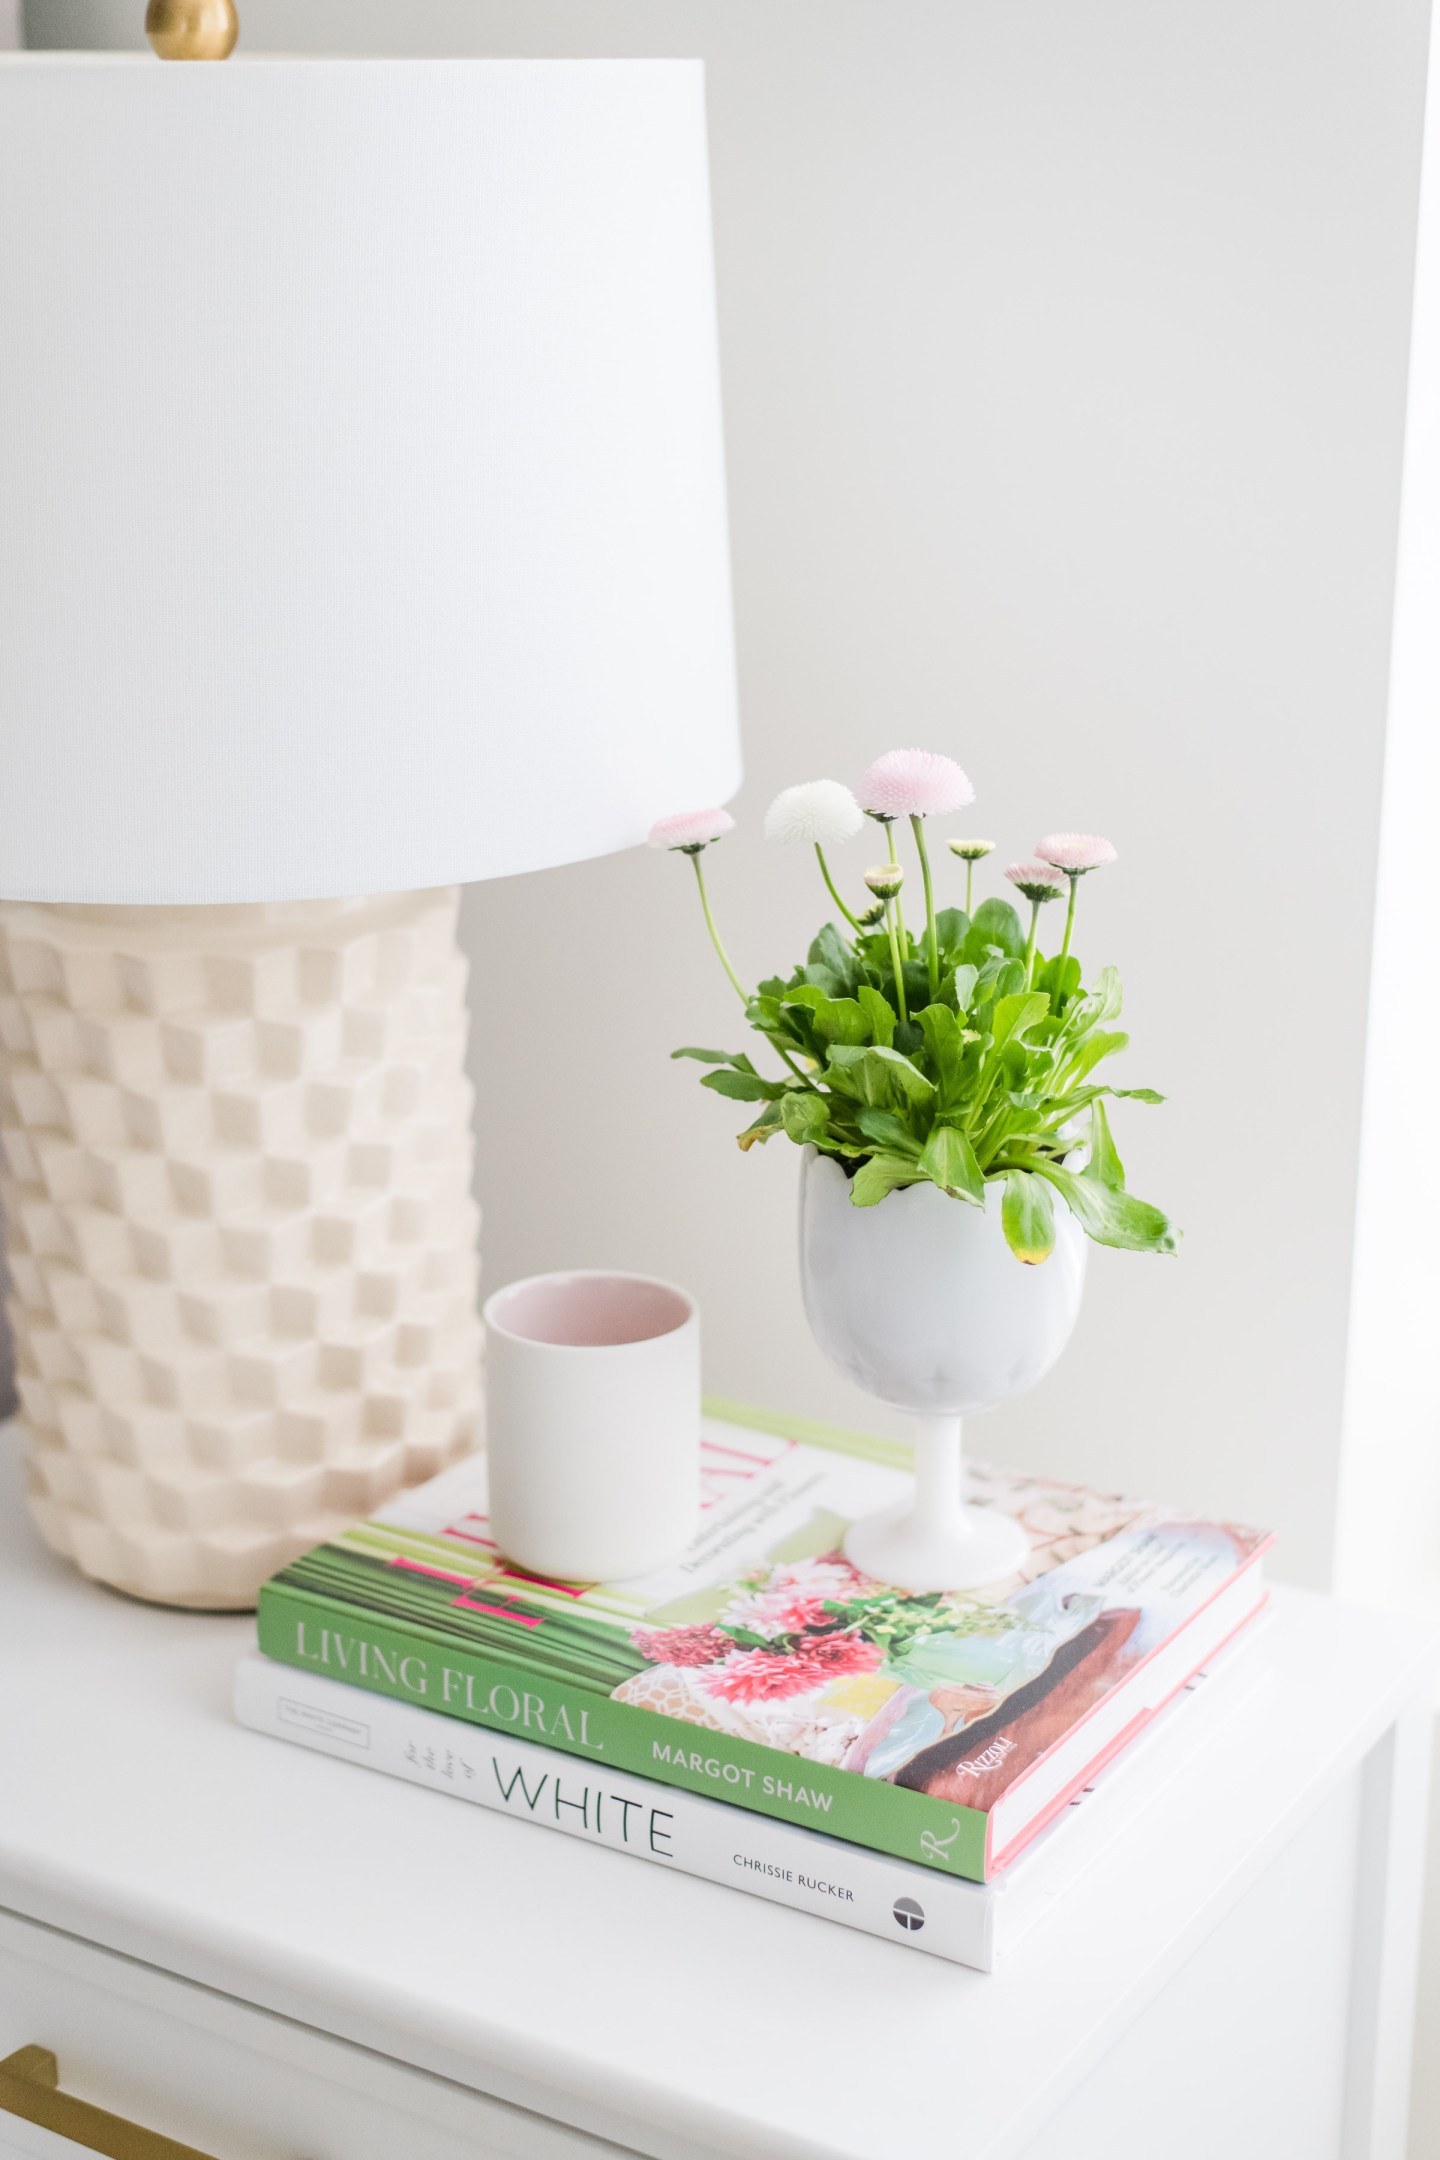 My Spring Bedroom Refresh with Wayfair Canada